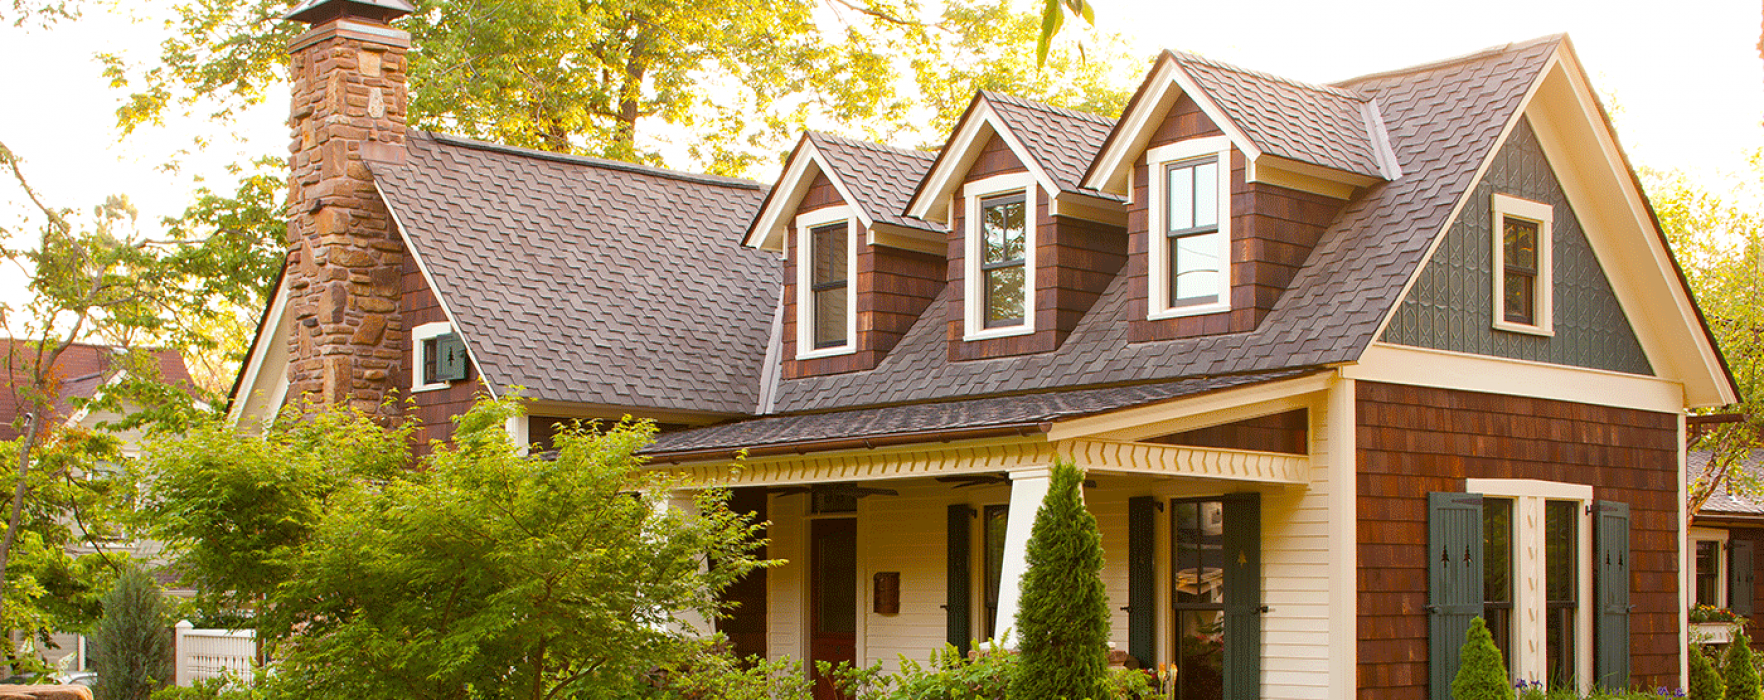 Picking A New Color Palette For Your Home S Exterior Better Homes And Garde